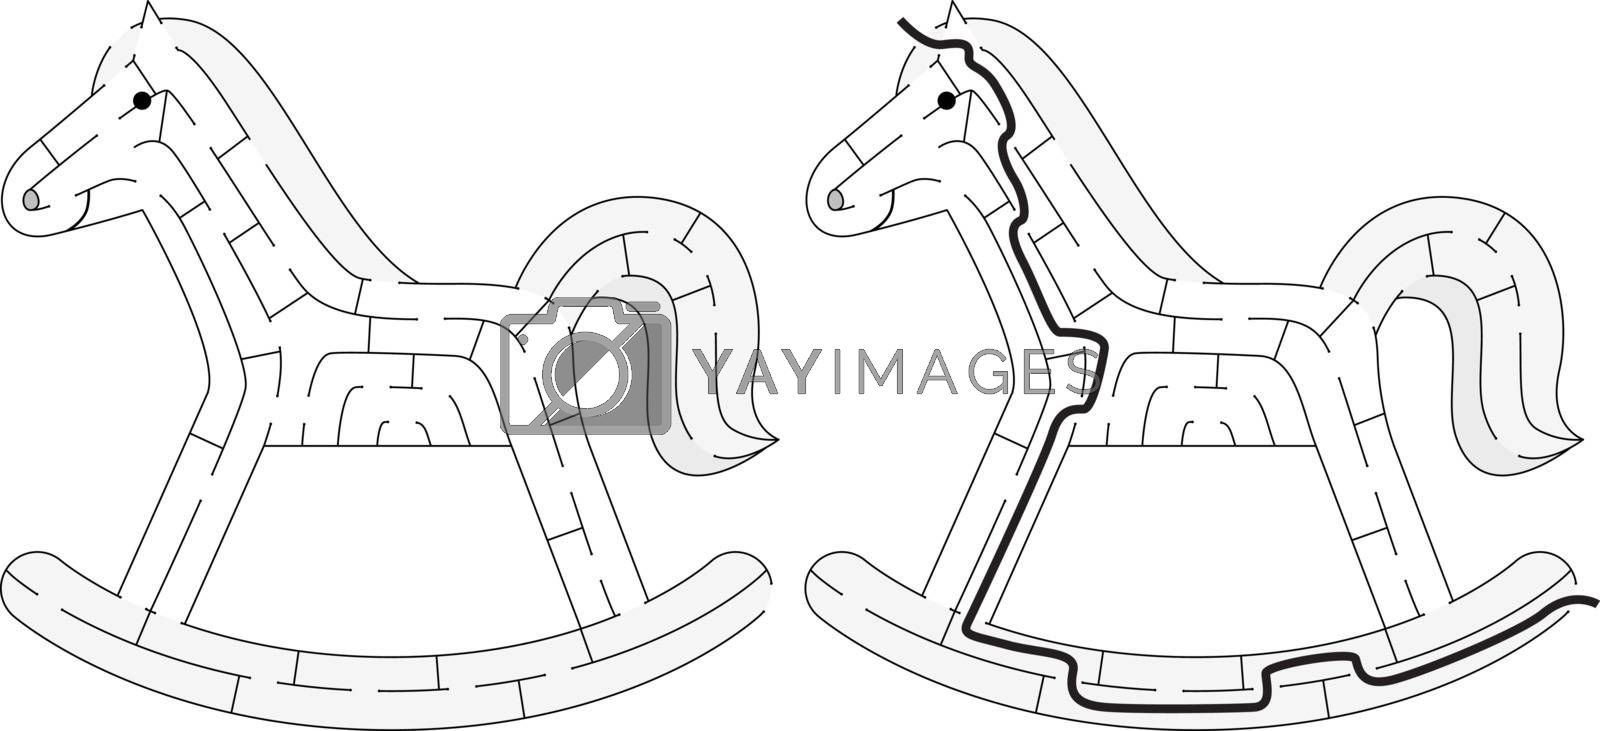 Easy rocking horse maze for kids with a solution in black and white